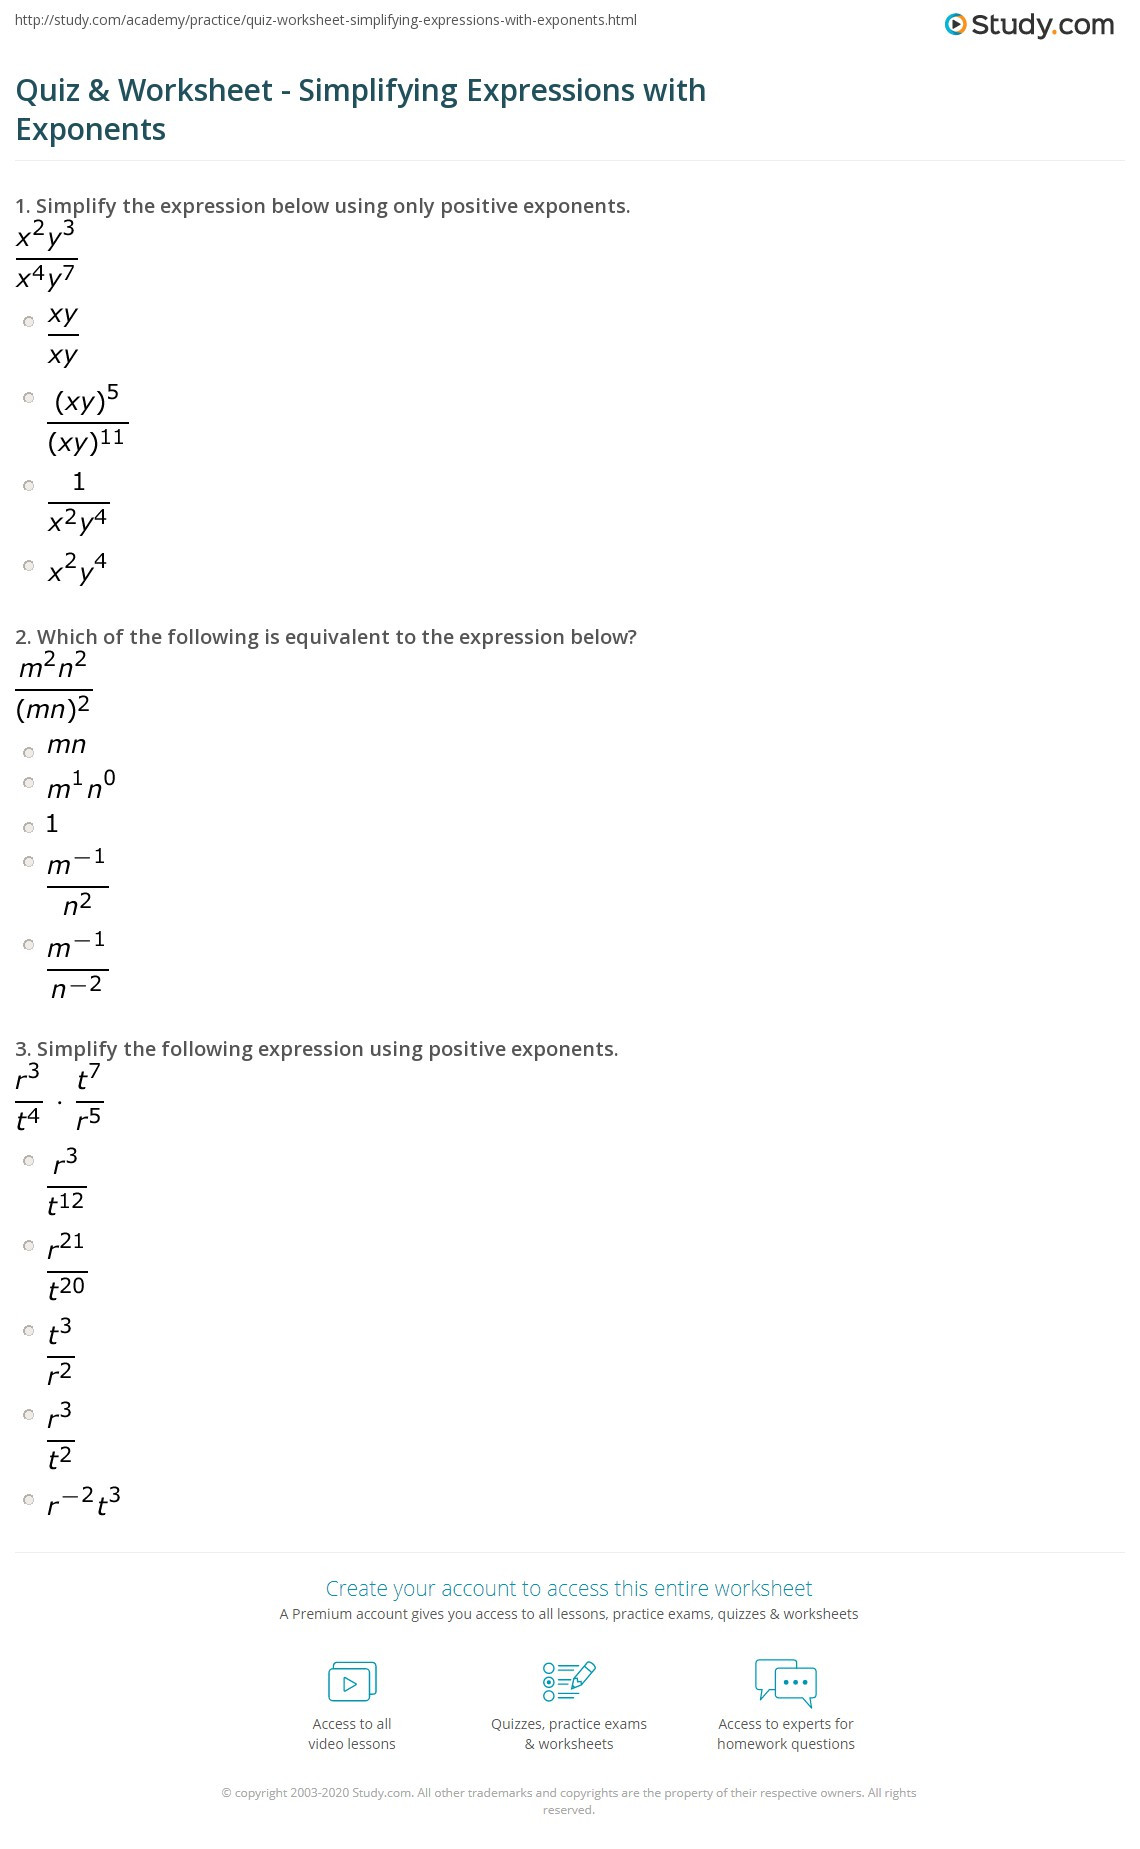 Simplifying Expressions Worksheet with Answers Quiz & Worksheet Simplifying Expressions with Exponents